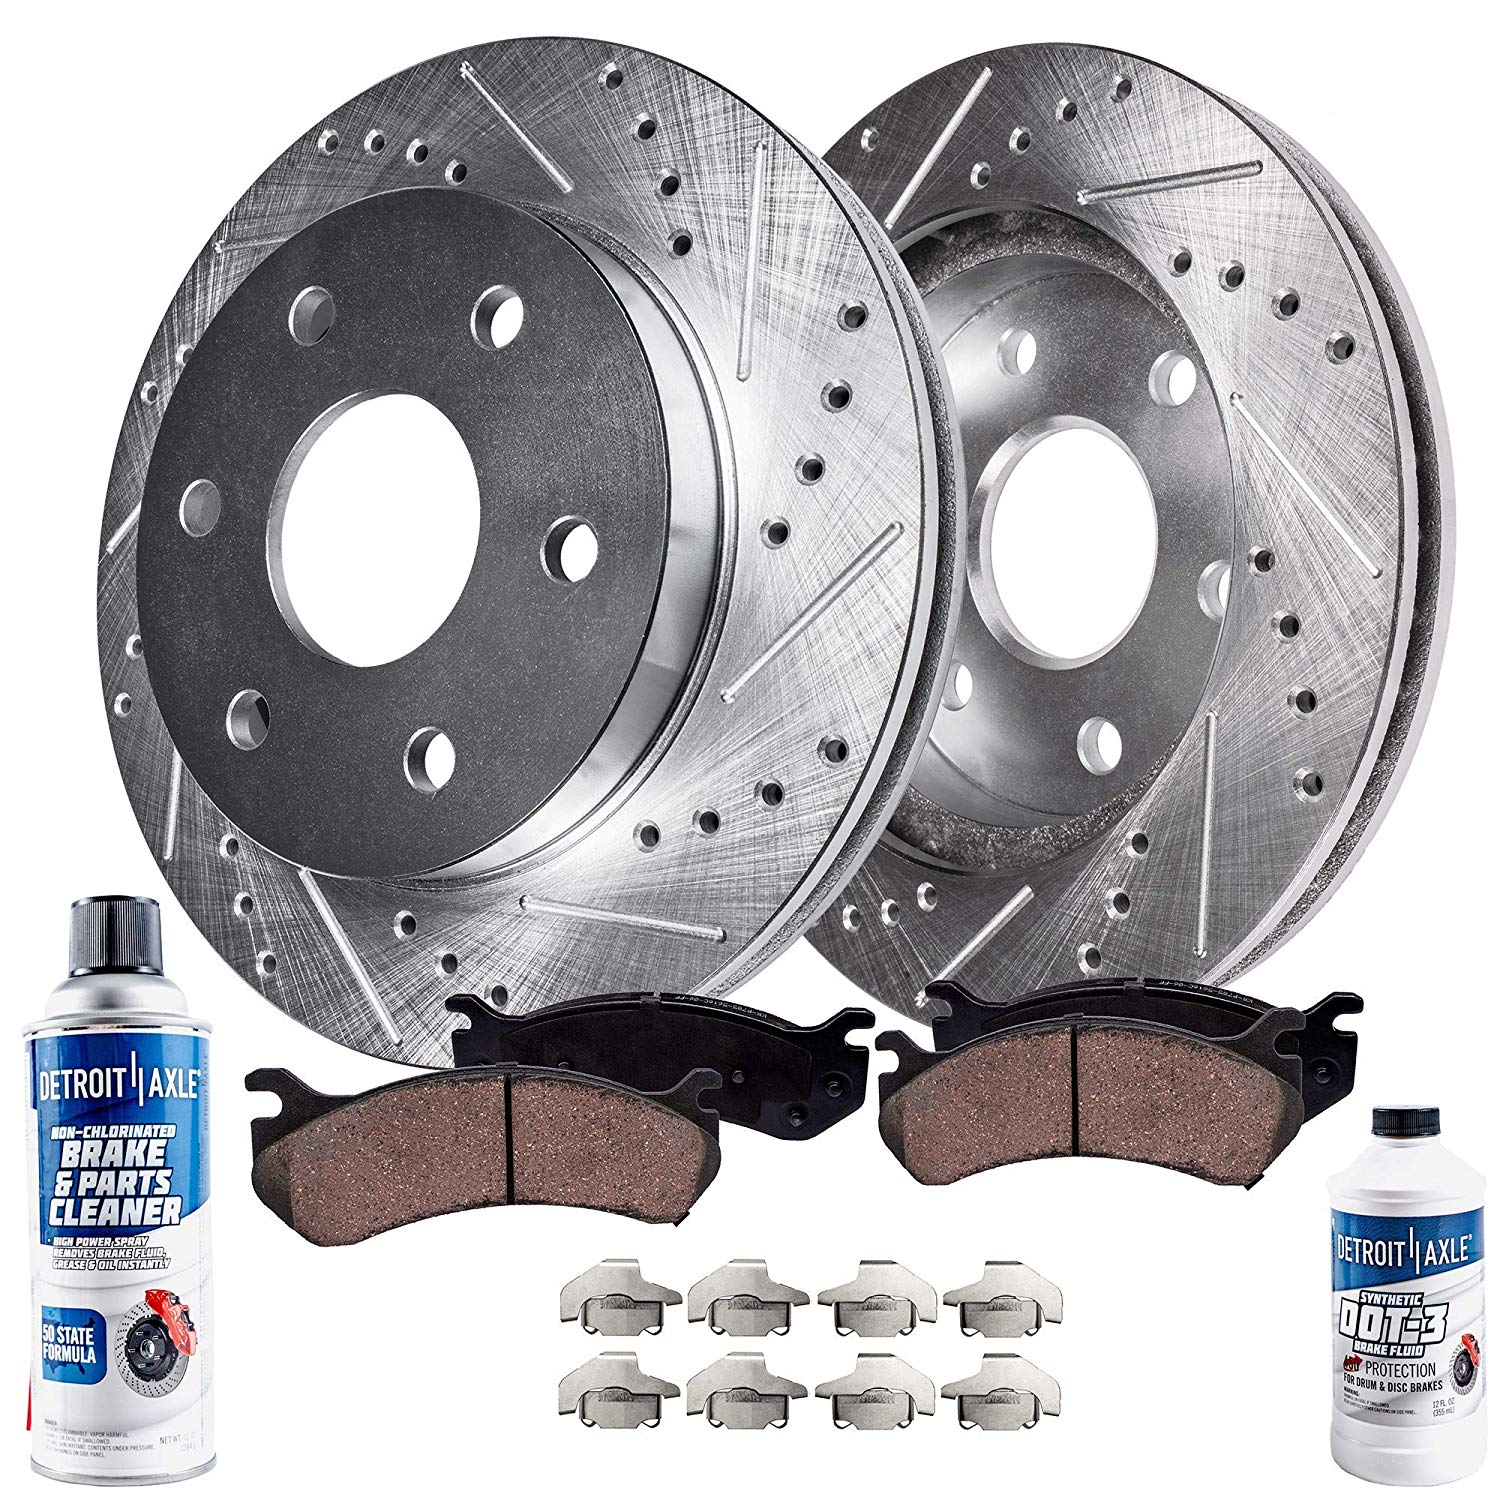 2005 Chevy Blazer See Desc. Rotors Ceramic Pads F+R OE Replacement